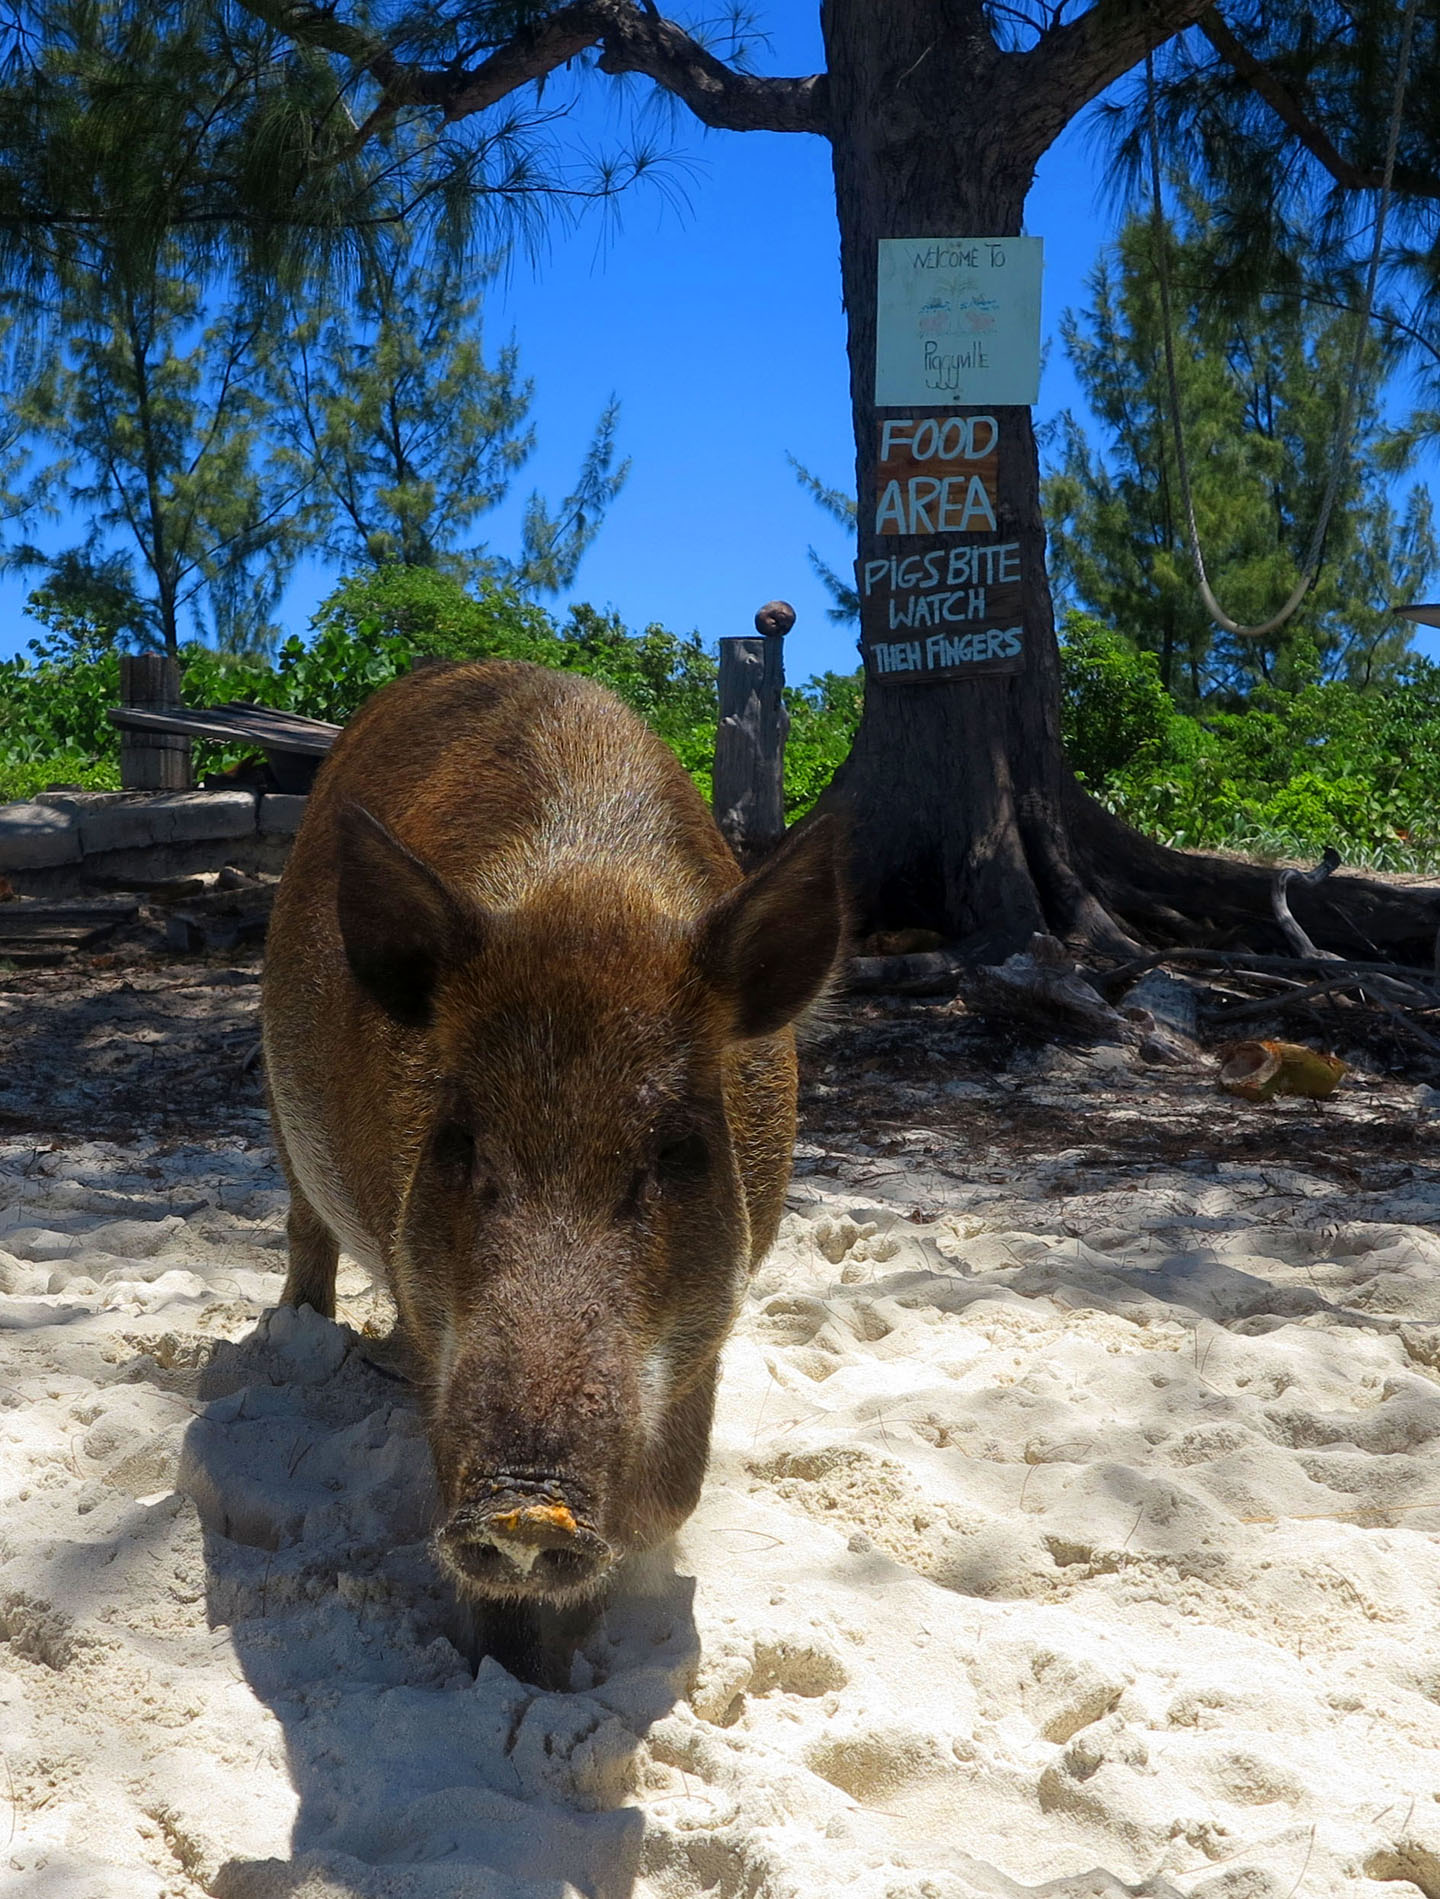 The Pig Whisperer of Green Turtle Cay – LITTLE HOUSE BY THE